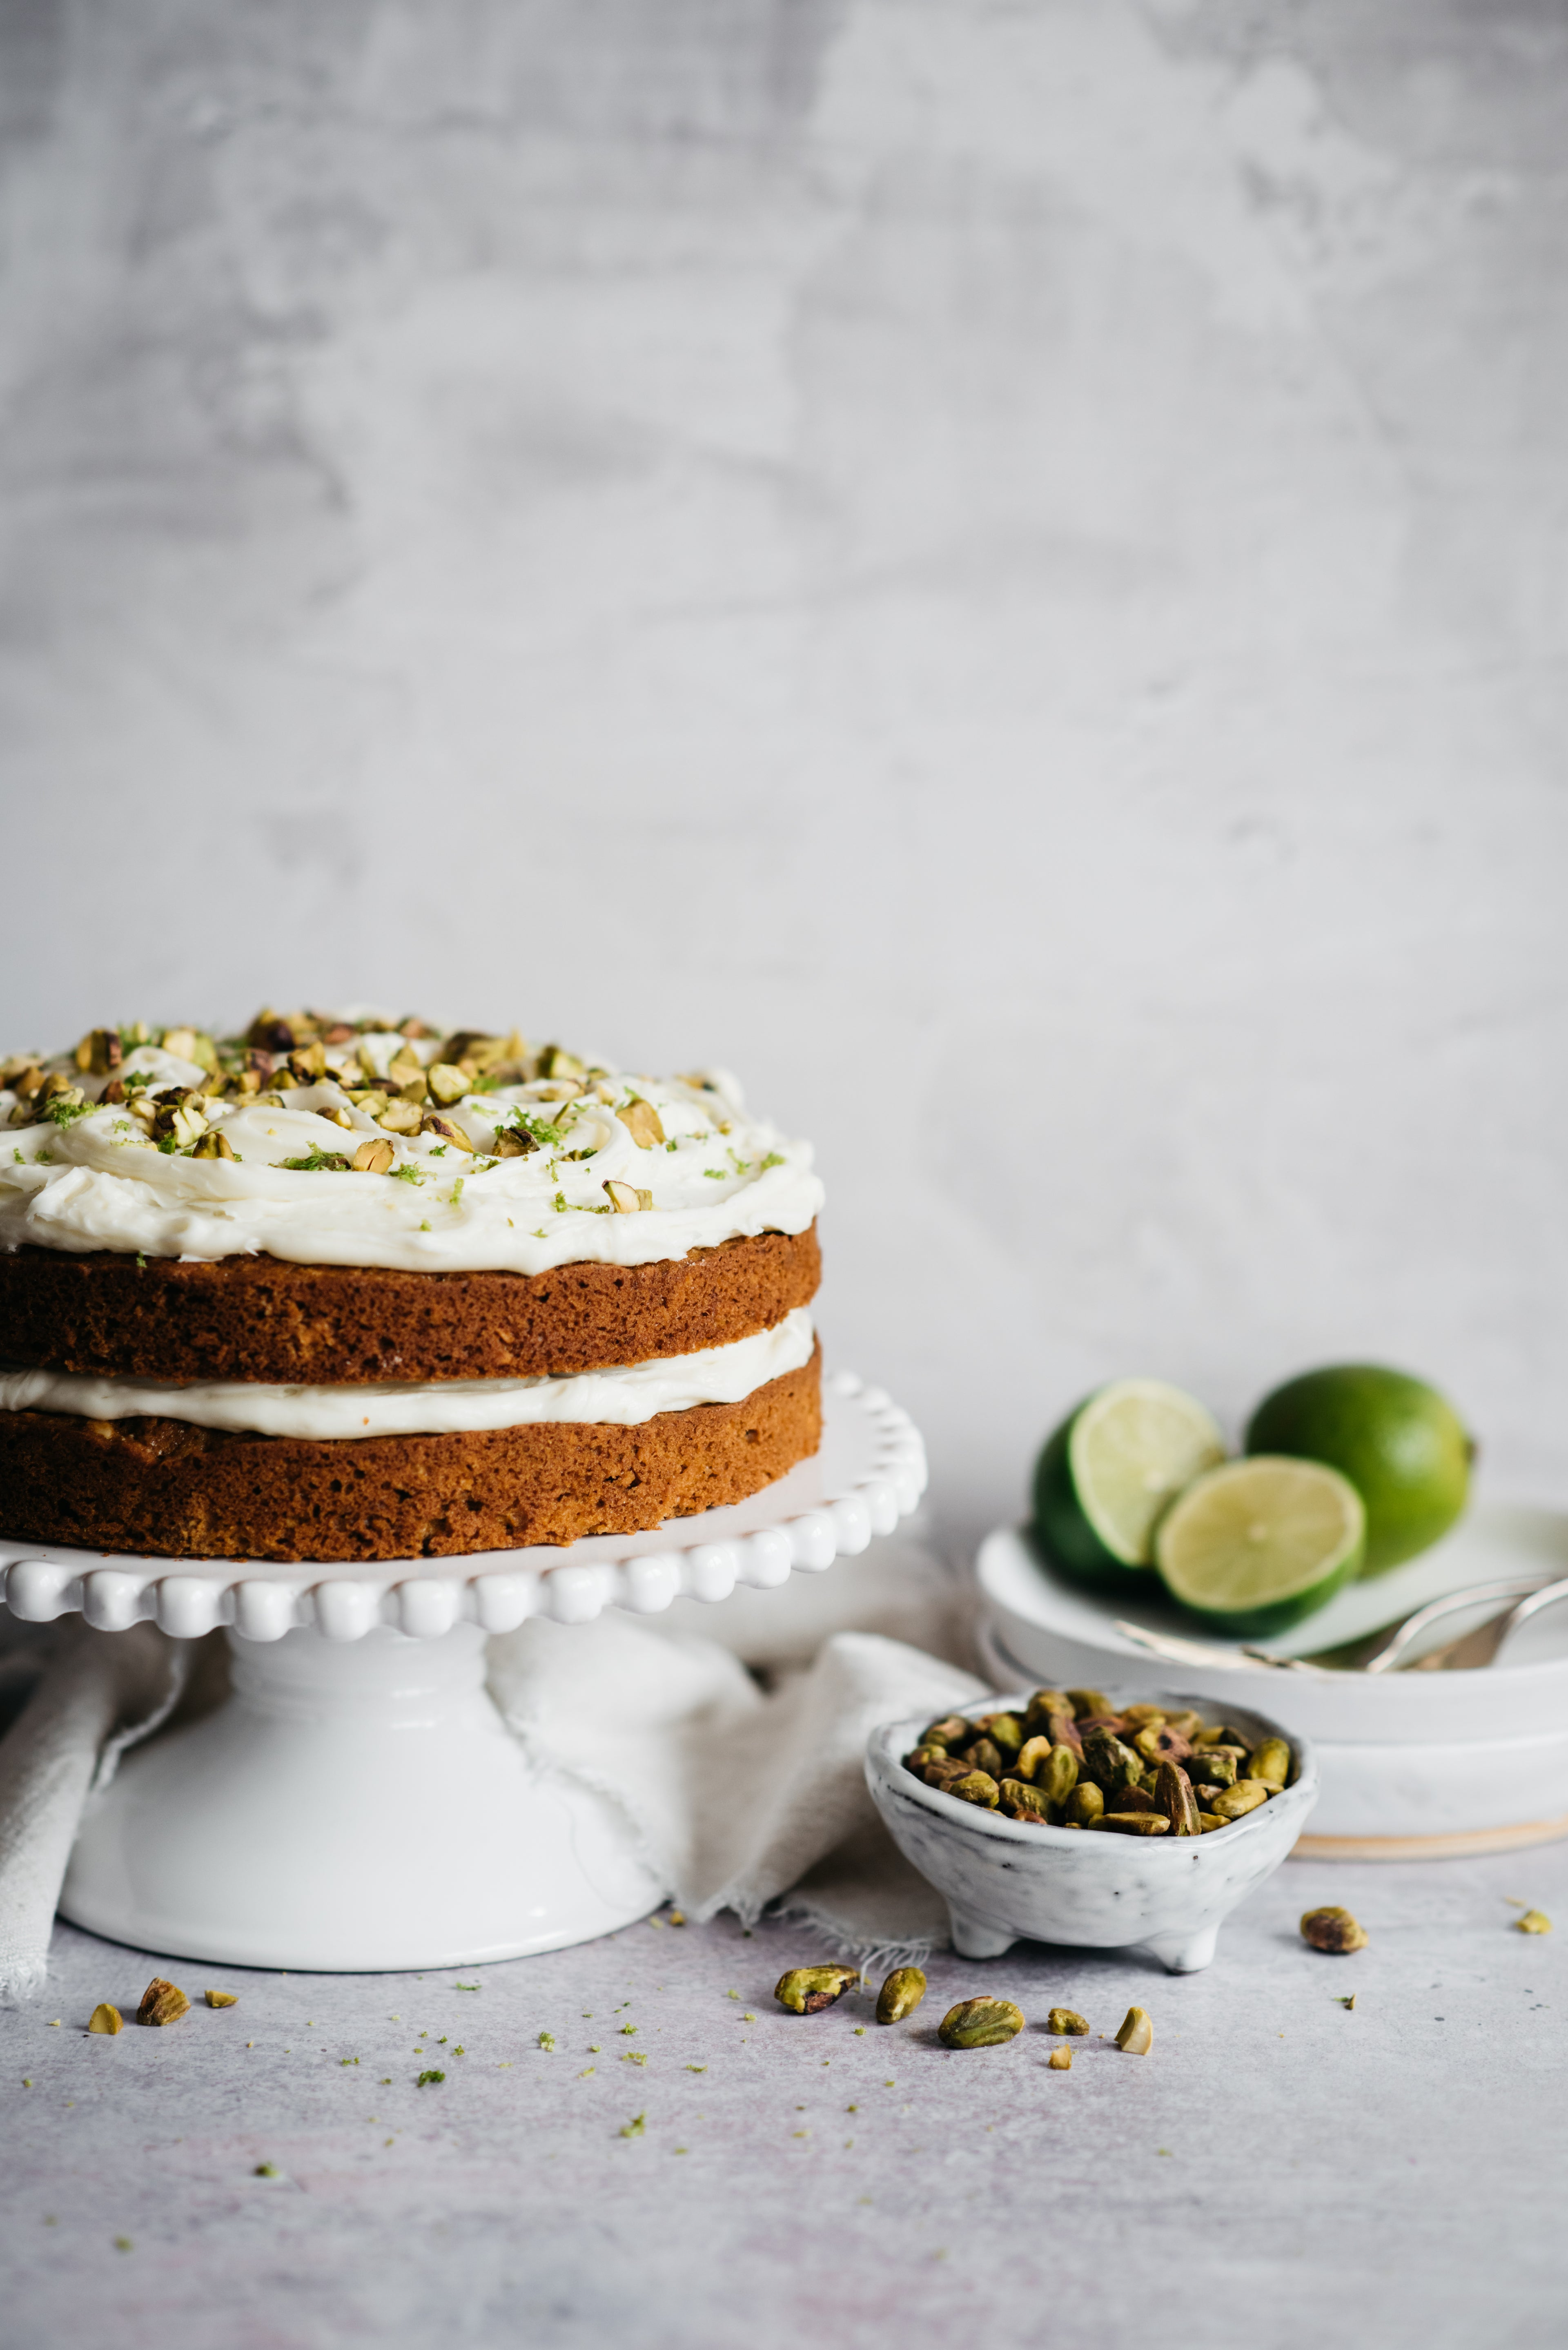 Carrot cake with icing on cake stand. Bowl of pistachios and limes in foreground